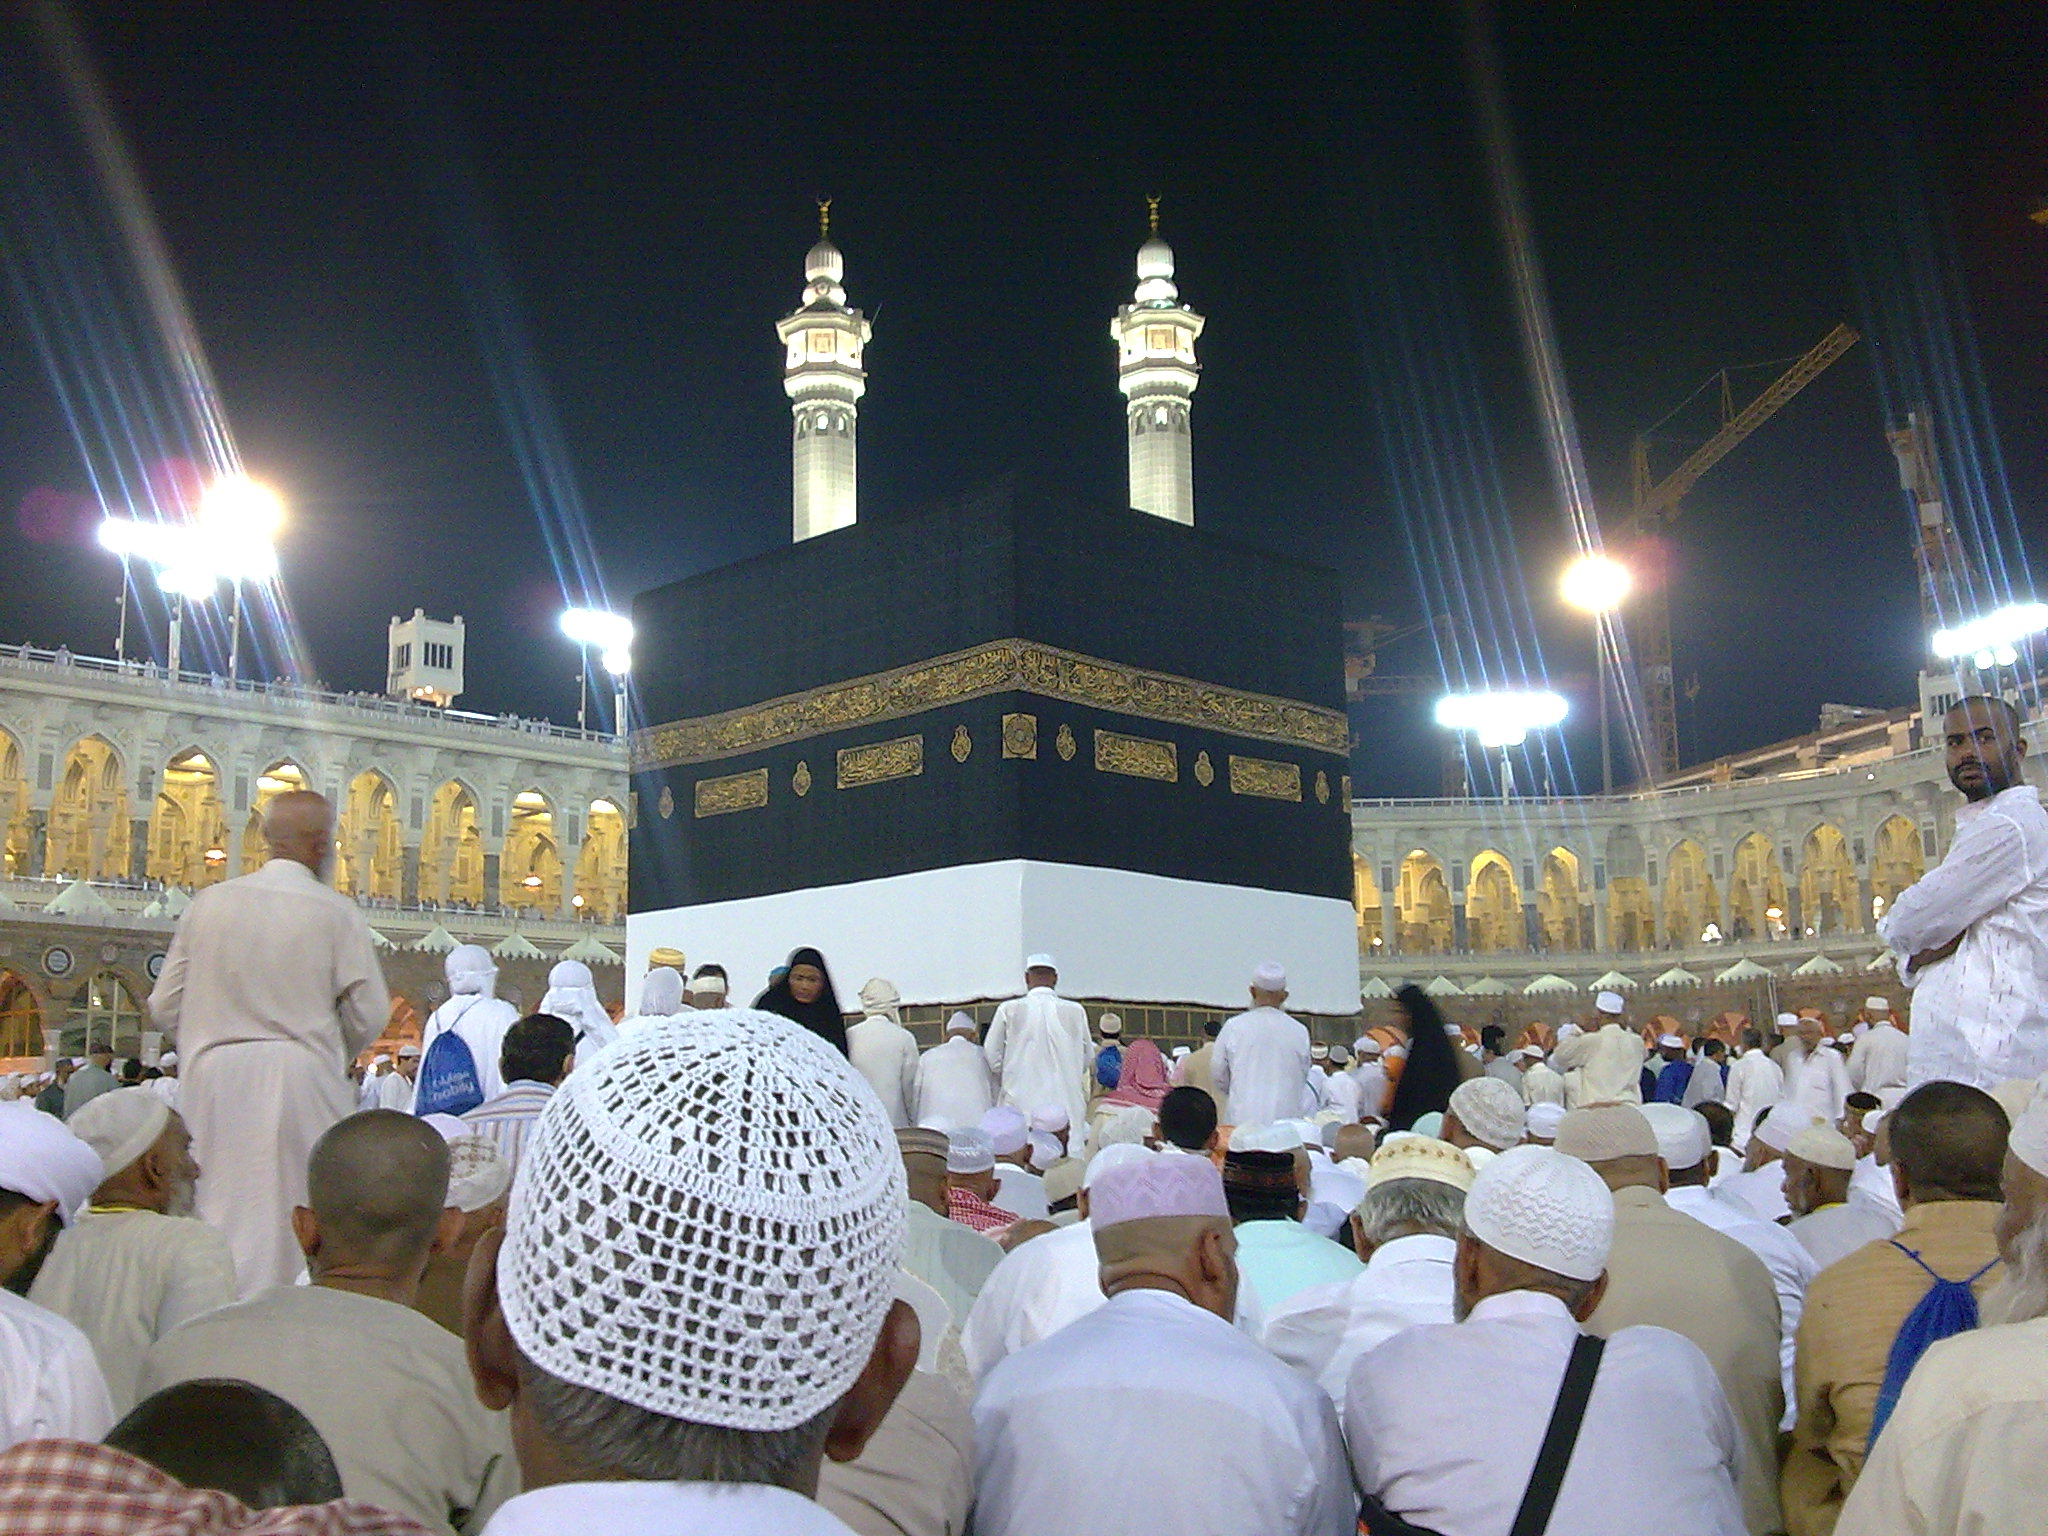 MEEQAT and IHRAM detail in Makkah during Hajj?Yalamlam. 5 meeqat location .nearest meeqat point to haram Masjid al haram and quranmualim. Learn Quran, Quran translation, Quran mp3,quran explorer, Quran download, Quran translation in Urdu English to Arabic, almualim, quranmualim, islam pictures, Islam symbol, Shia Islam, Sunni Islam, Islam facts],Islam beliefs and practices Islam religion history, Islam guide, prophet Muhammad quotes, prophet Muhammad biography, Prophet Muhammad family tree.